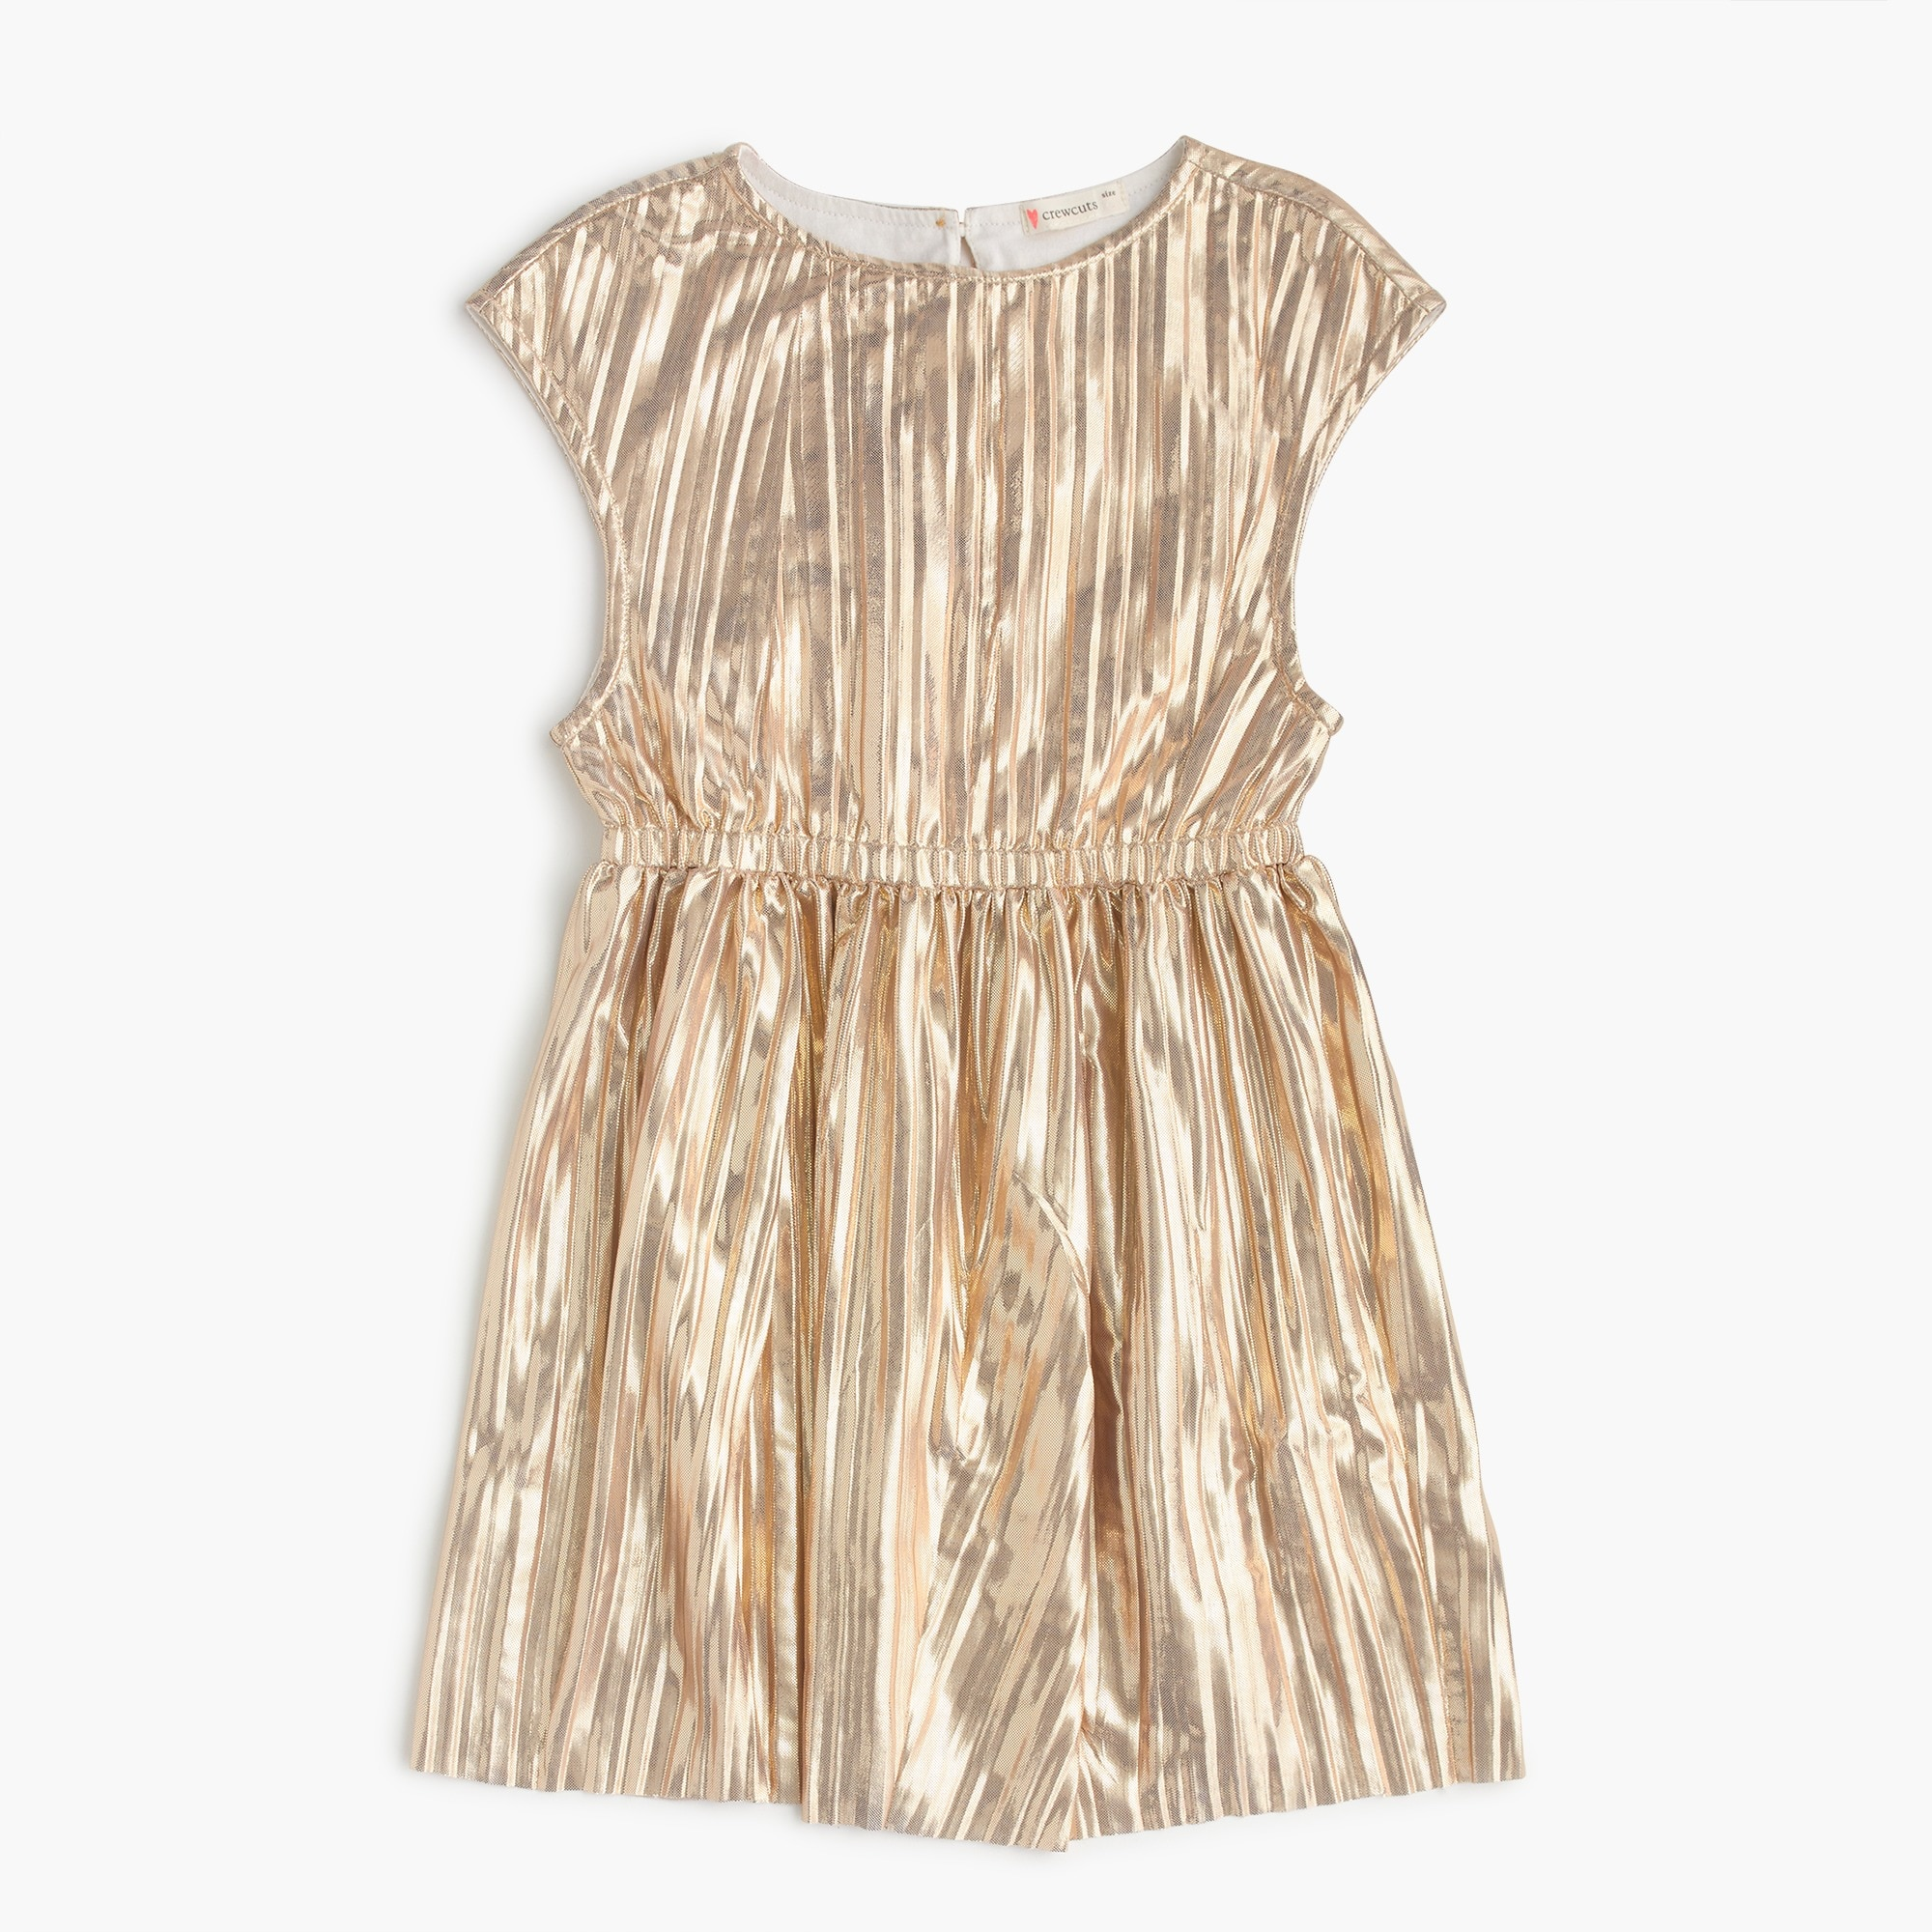 girls Girls' gold micropleat dress